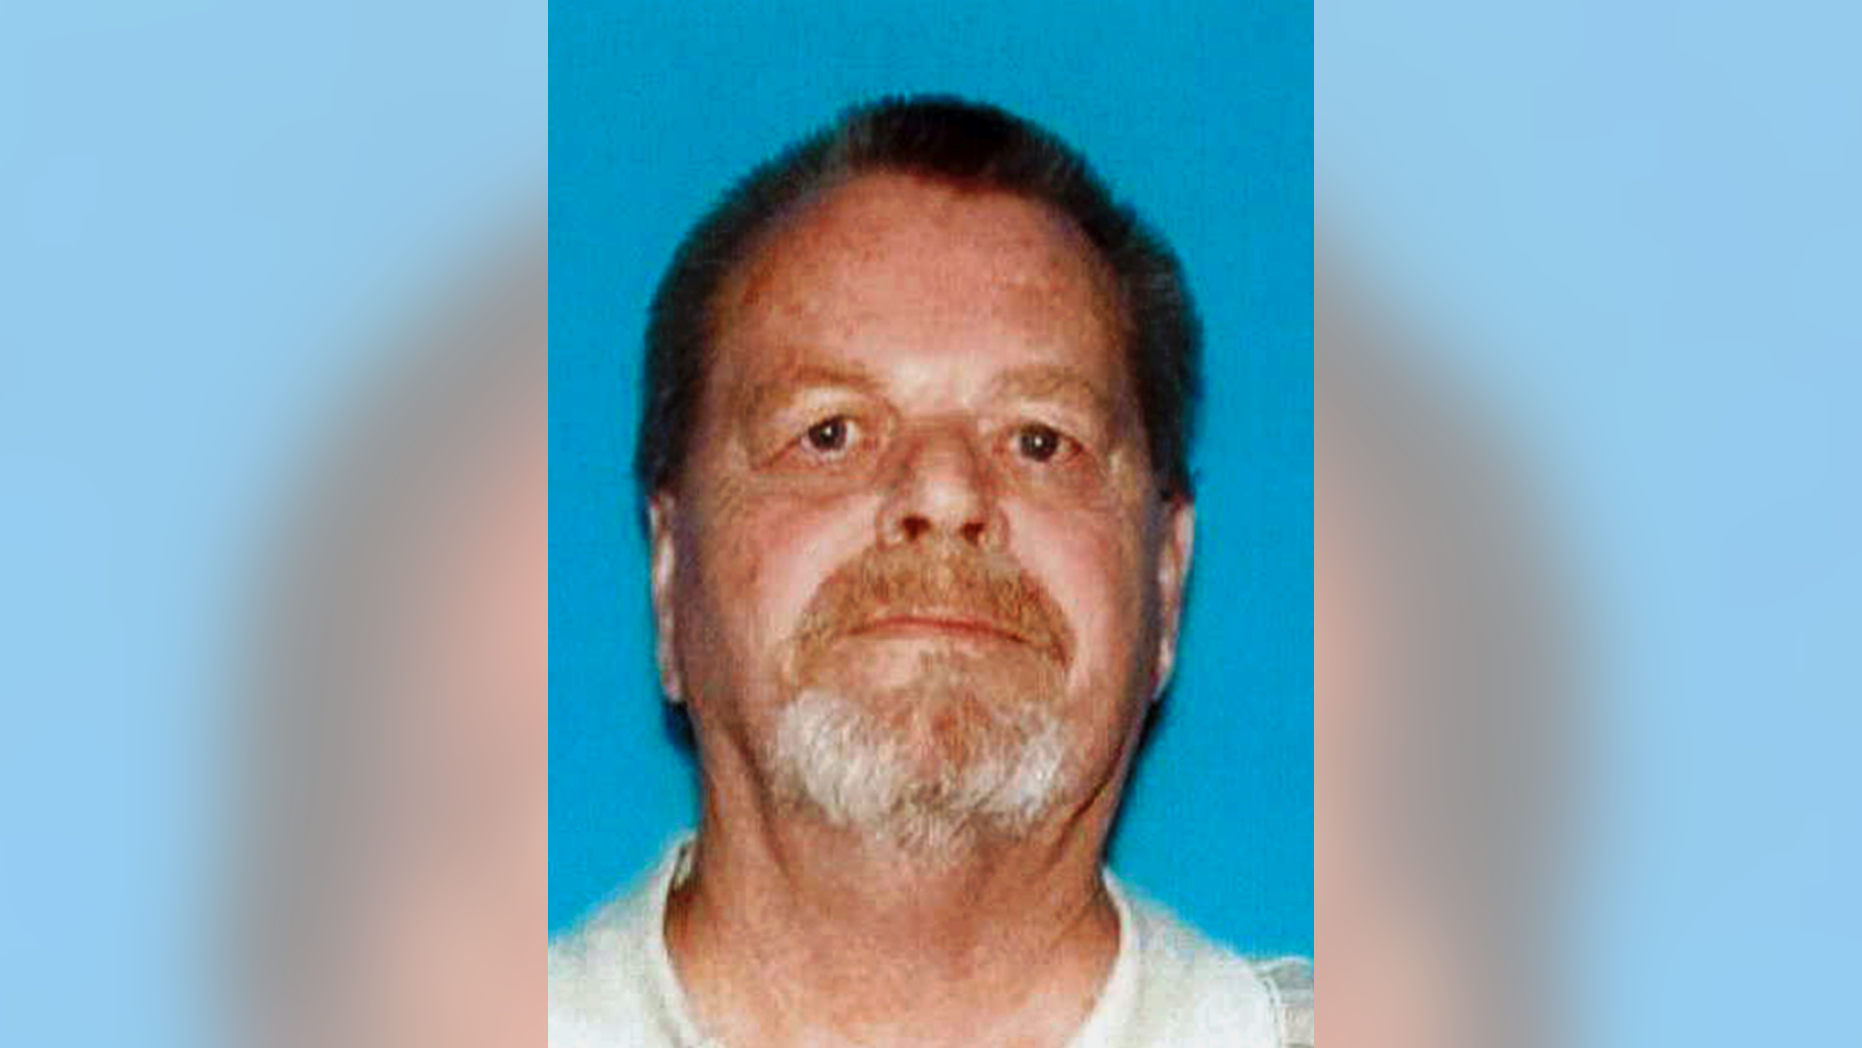 FILE - This undated photo provided by the Newport Beach Police Department shows James Neal. Neal, 72, has pleaded not guilty to murder in the 1973 death of an 11-year-old California girl. Neal of Monument, Colo, also pleaded not guilty in an Orange County courtroom Friday, March 29, 2019, to lewd and lascivious acts on two girls under age 14. Neal was extradited to California from Colorado after he was charged with murder in the death of 11-year-old Linda O'Keefe in Newport Beach, Calif. (Newport Beach Police Department via AP, File)